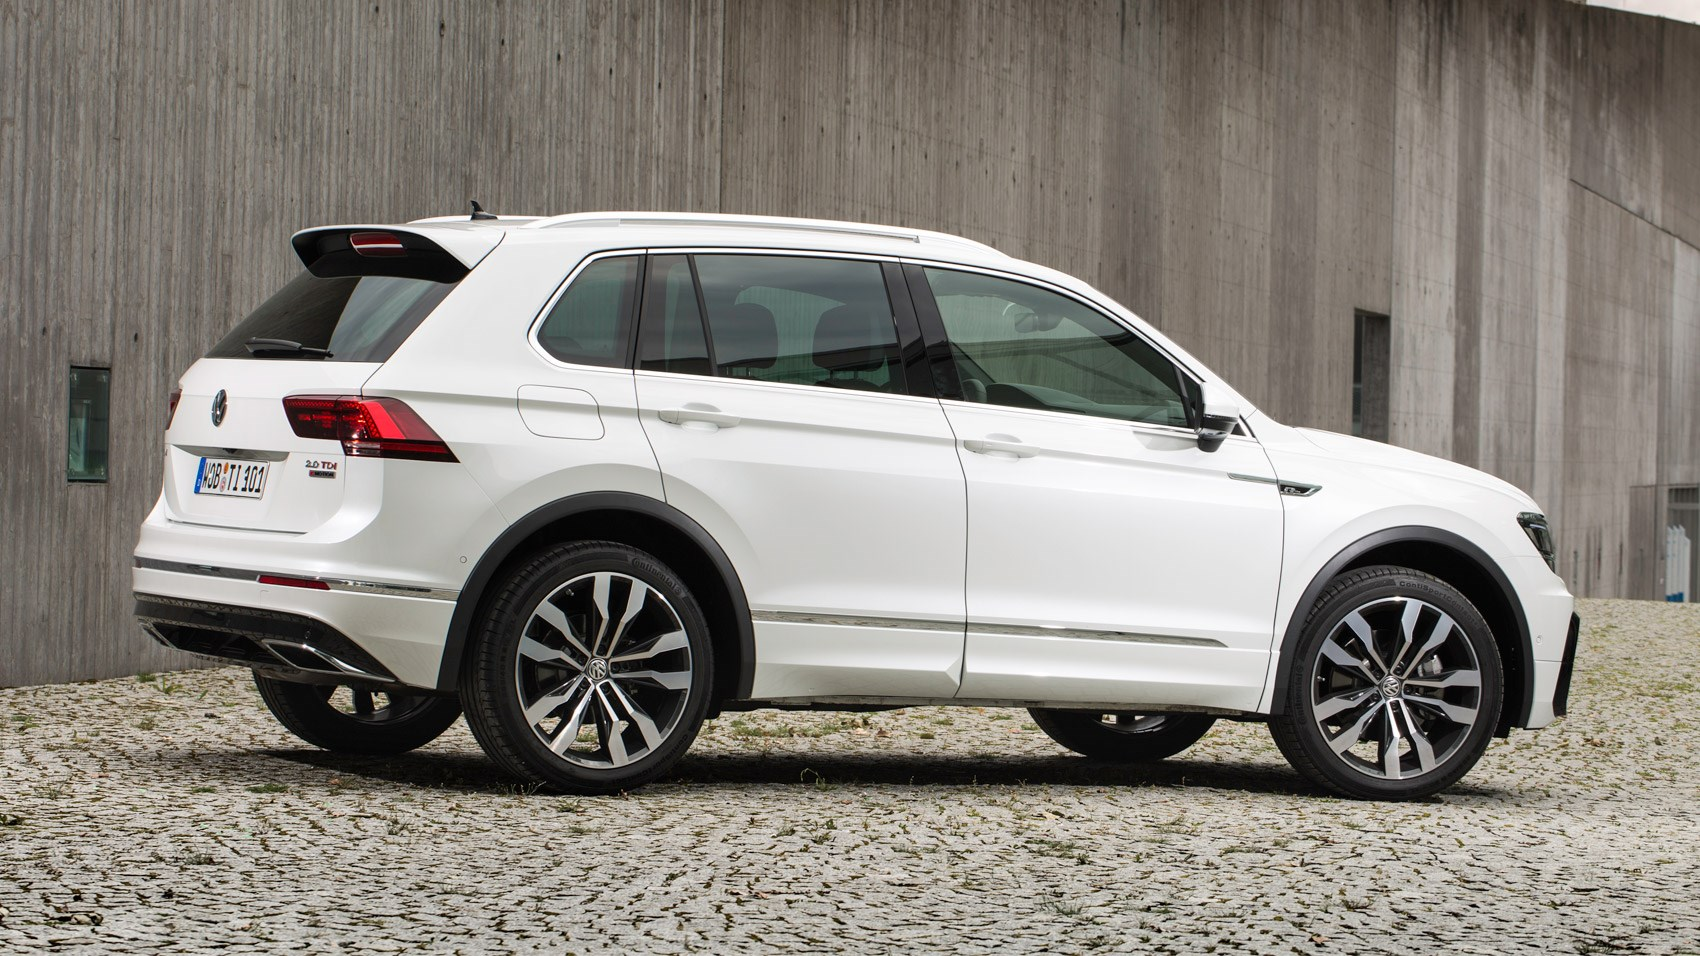 vw tiguan 2 0 bitdi 240 4motion r line 2016 review by car magazine. Black Bedroom Furniture Sets. Home Design Ideas